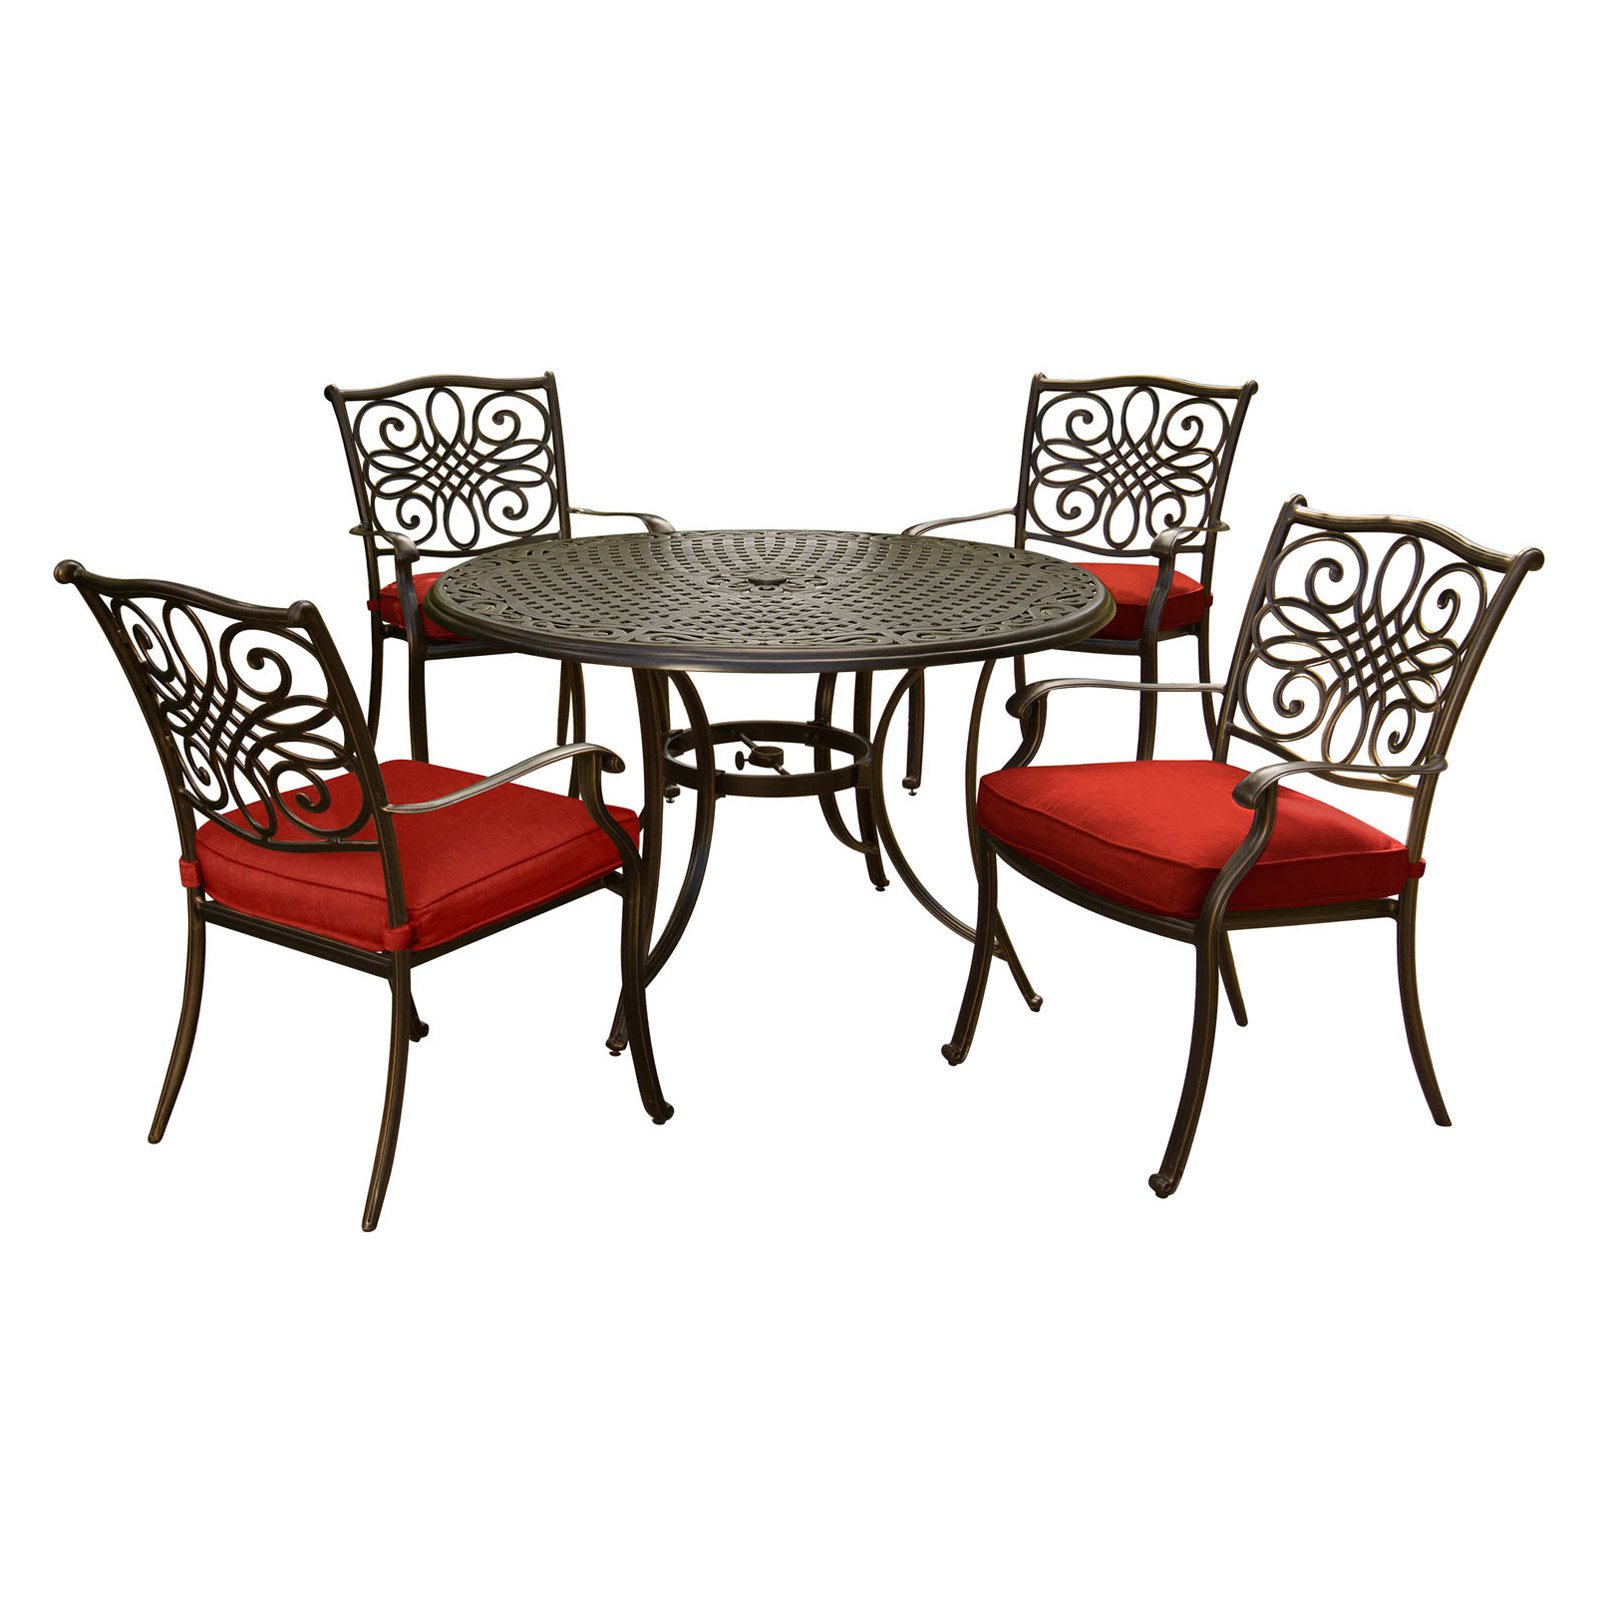 Hanover Traditions 5-Piece Outdoor Dining Set with Round Cast-Top Table and 4 Stationary Chairs